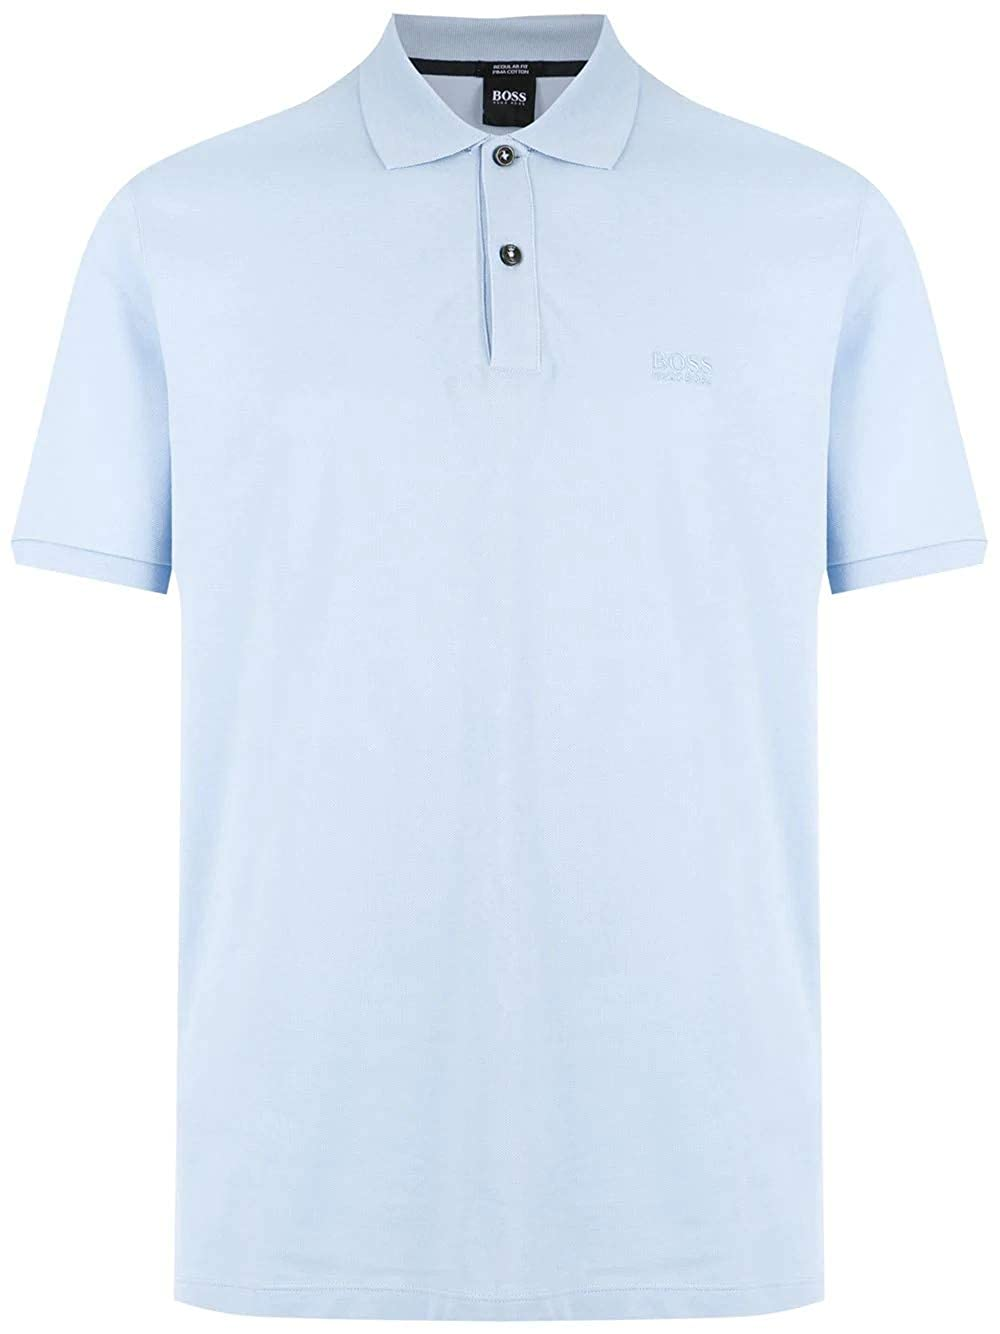 9df062bec Amazon.com: Hugo Boss Men's Pallas Short Sleeve Polo Shirt: Clothing